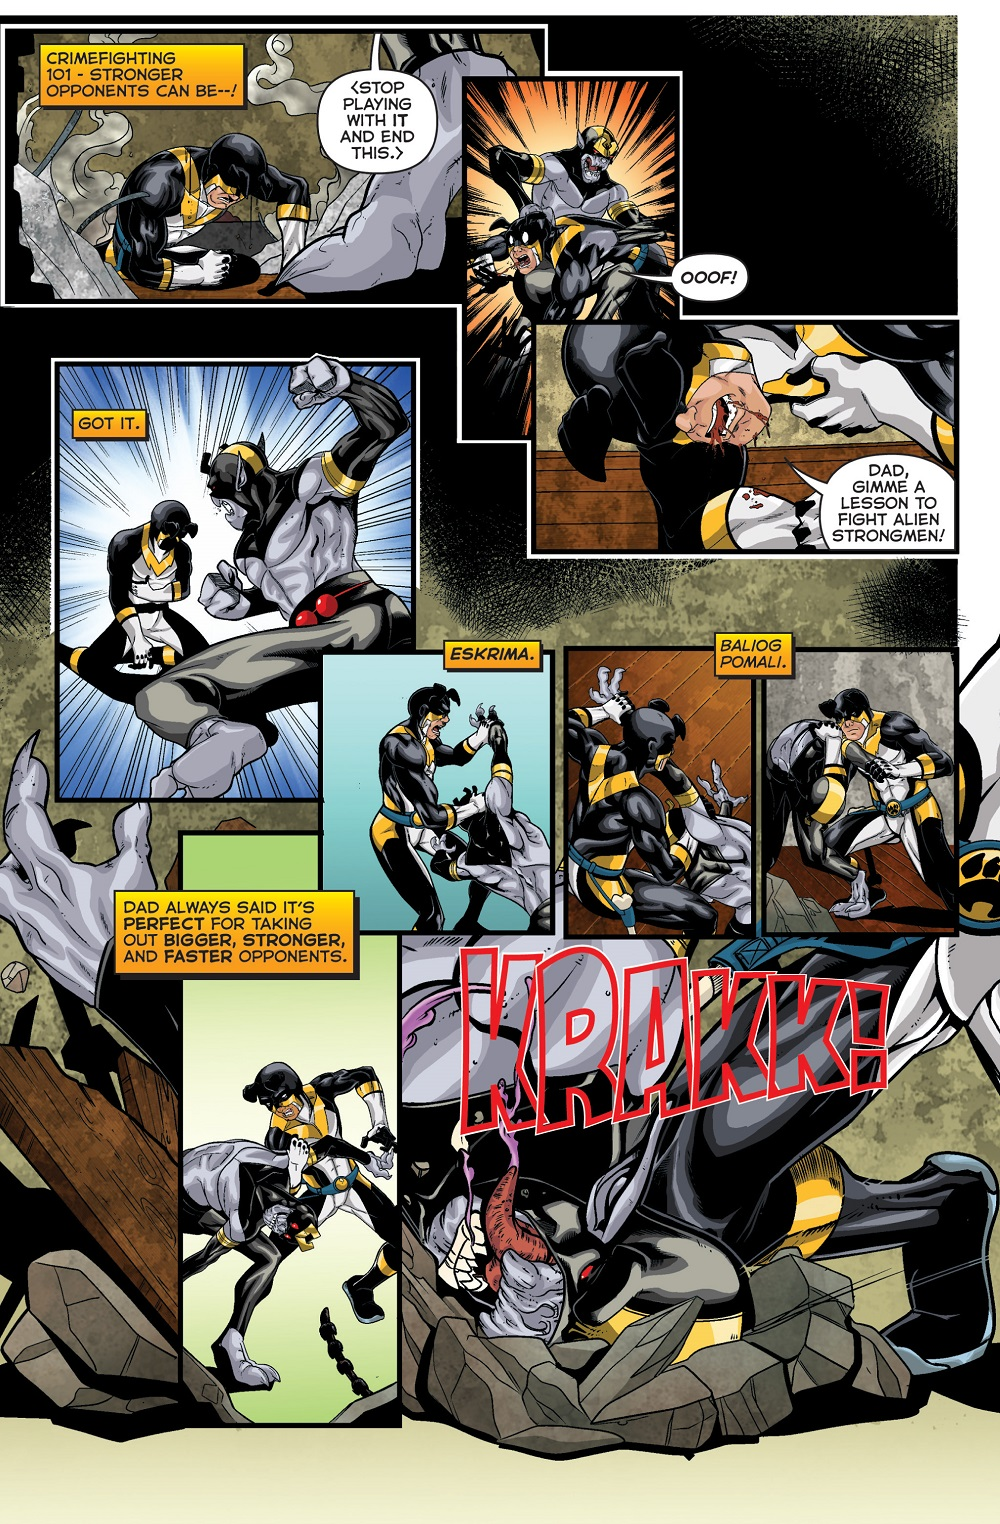 Actionverse Featuring Stray Volume 1 #4 Page 5